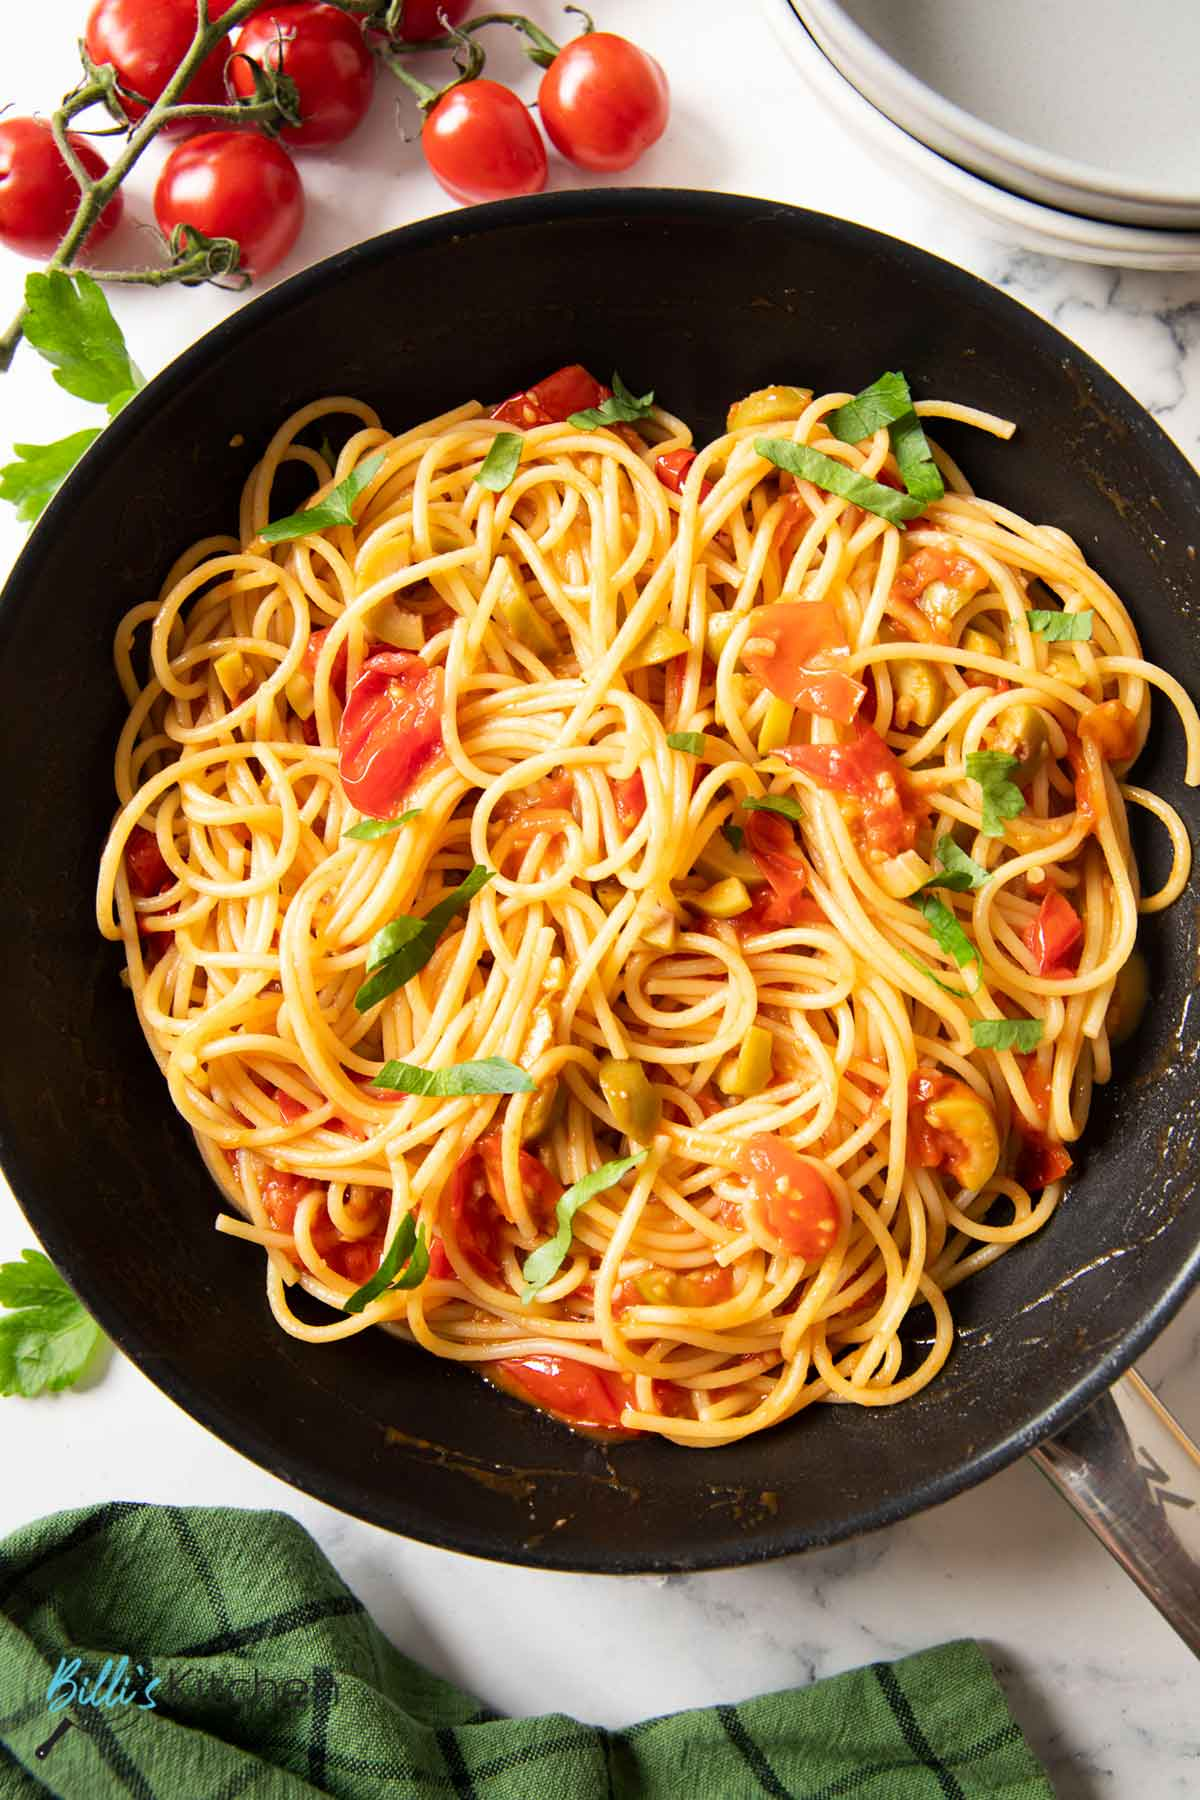 A pan of pasta with cherry tomatoes, with fresh tomatoes on the side.